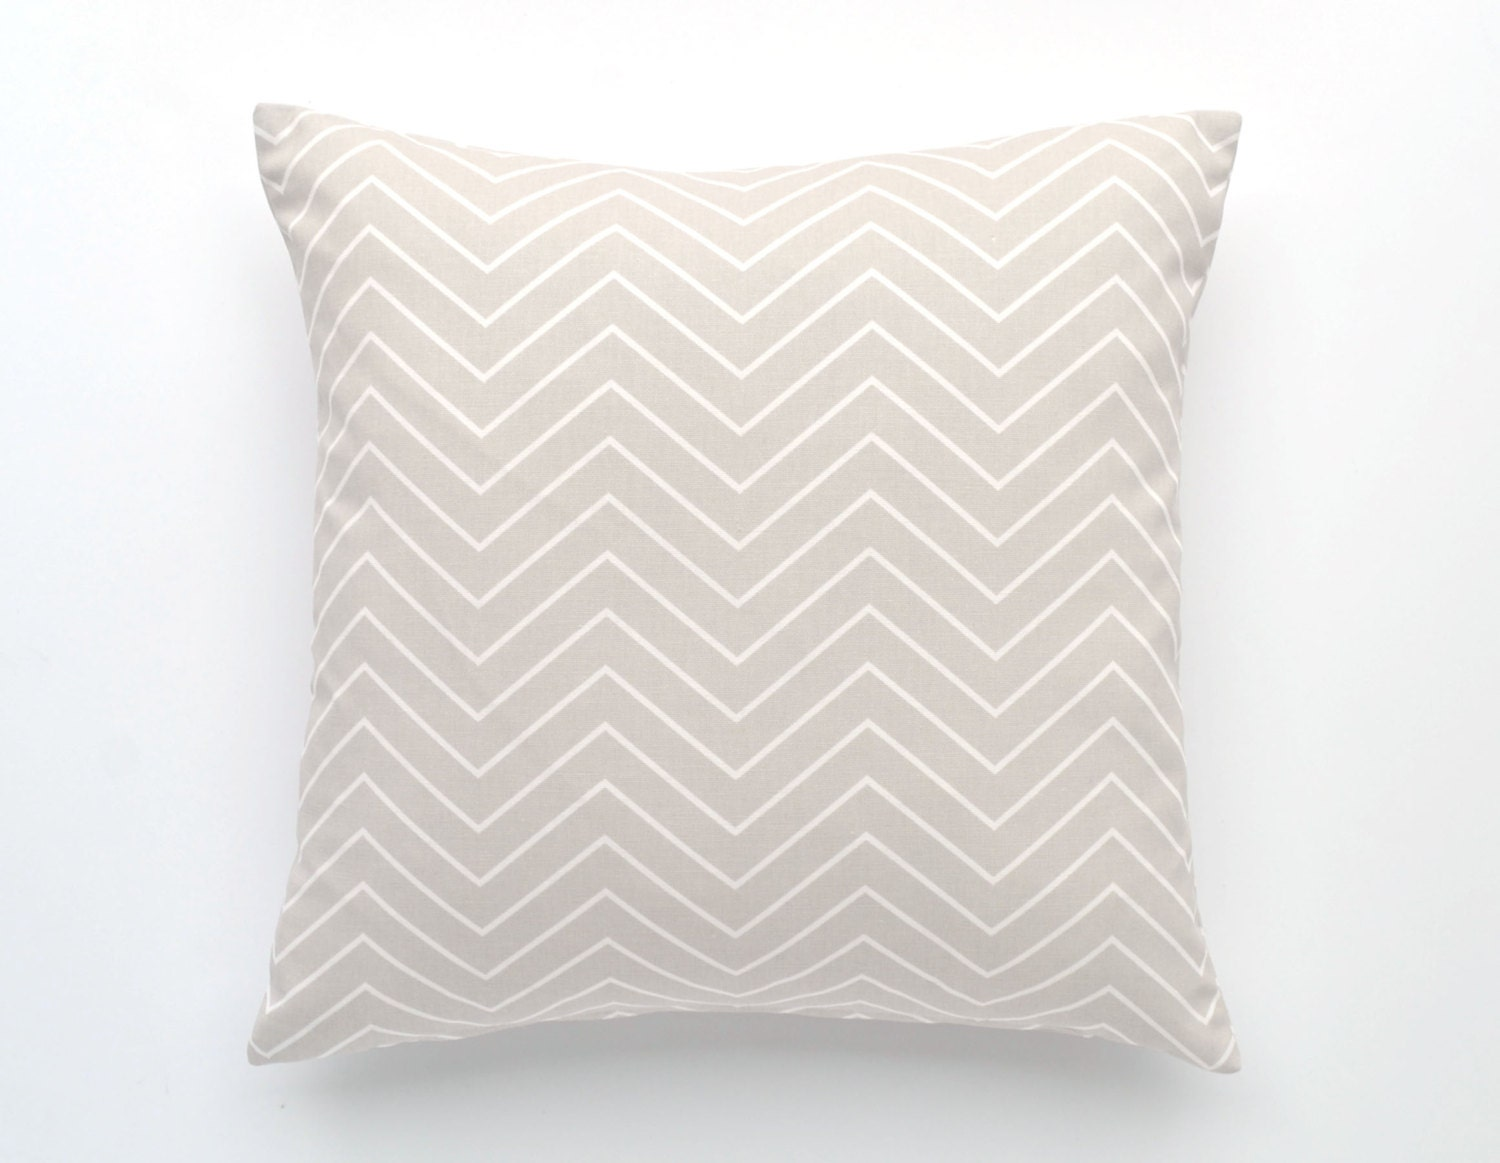 Throw Pillow Case 20 X 20 : Chevron Pillow Cover- 20 x 20 - Light Gray and White Chevron, - Chevron Throw Pillow, Decorative ...